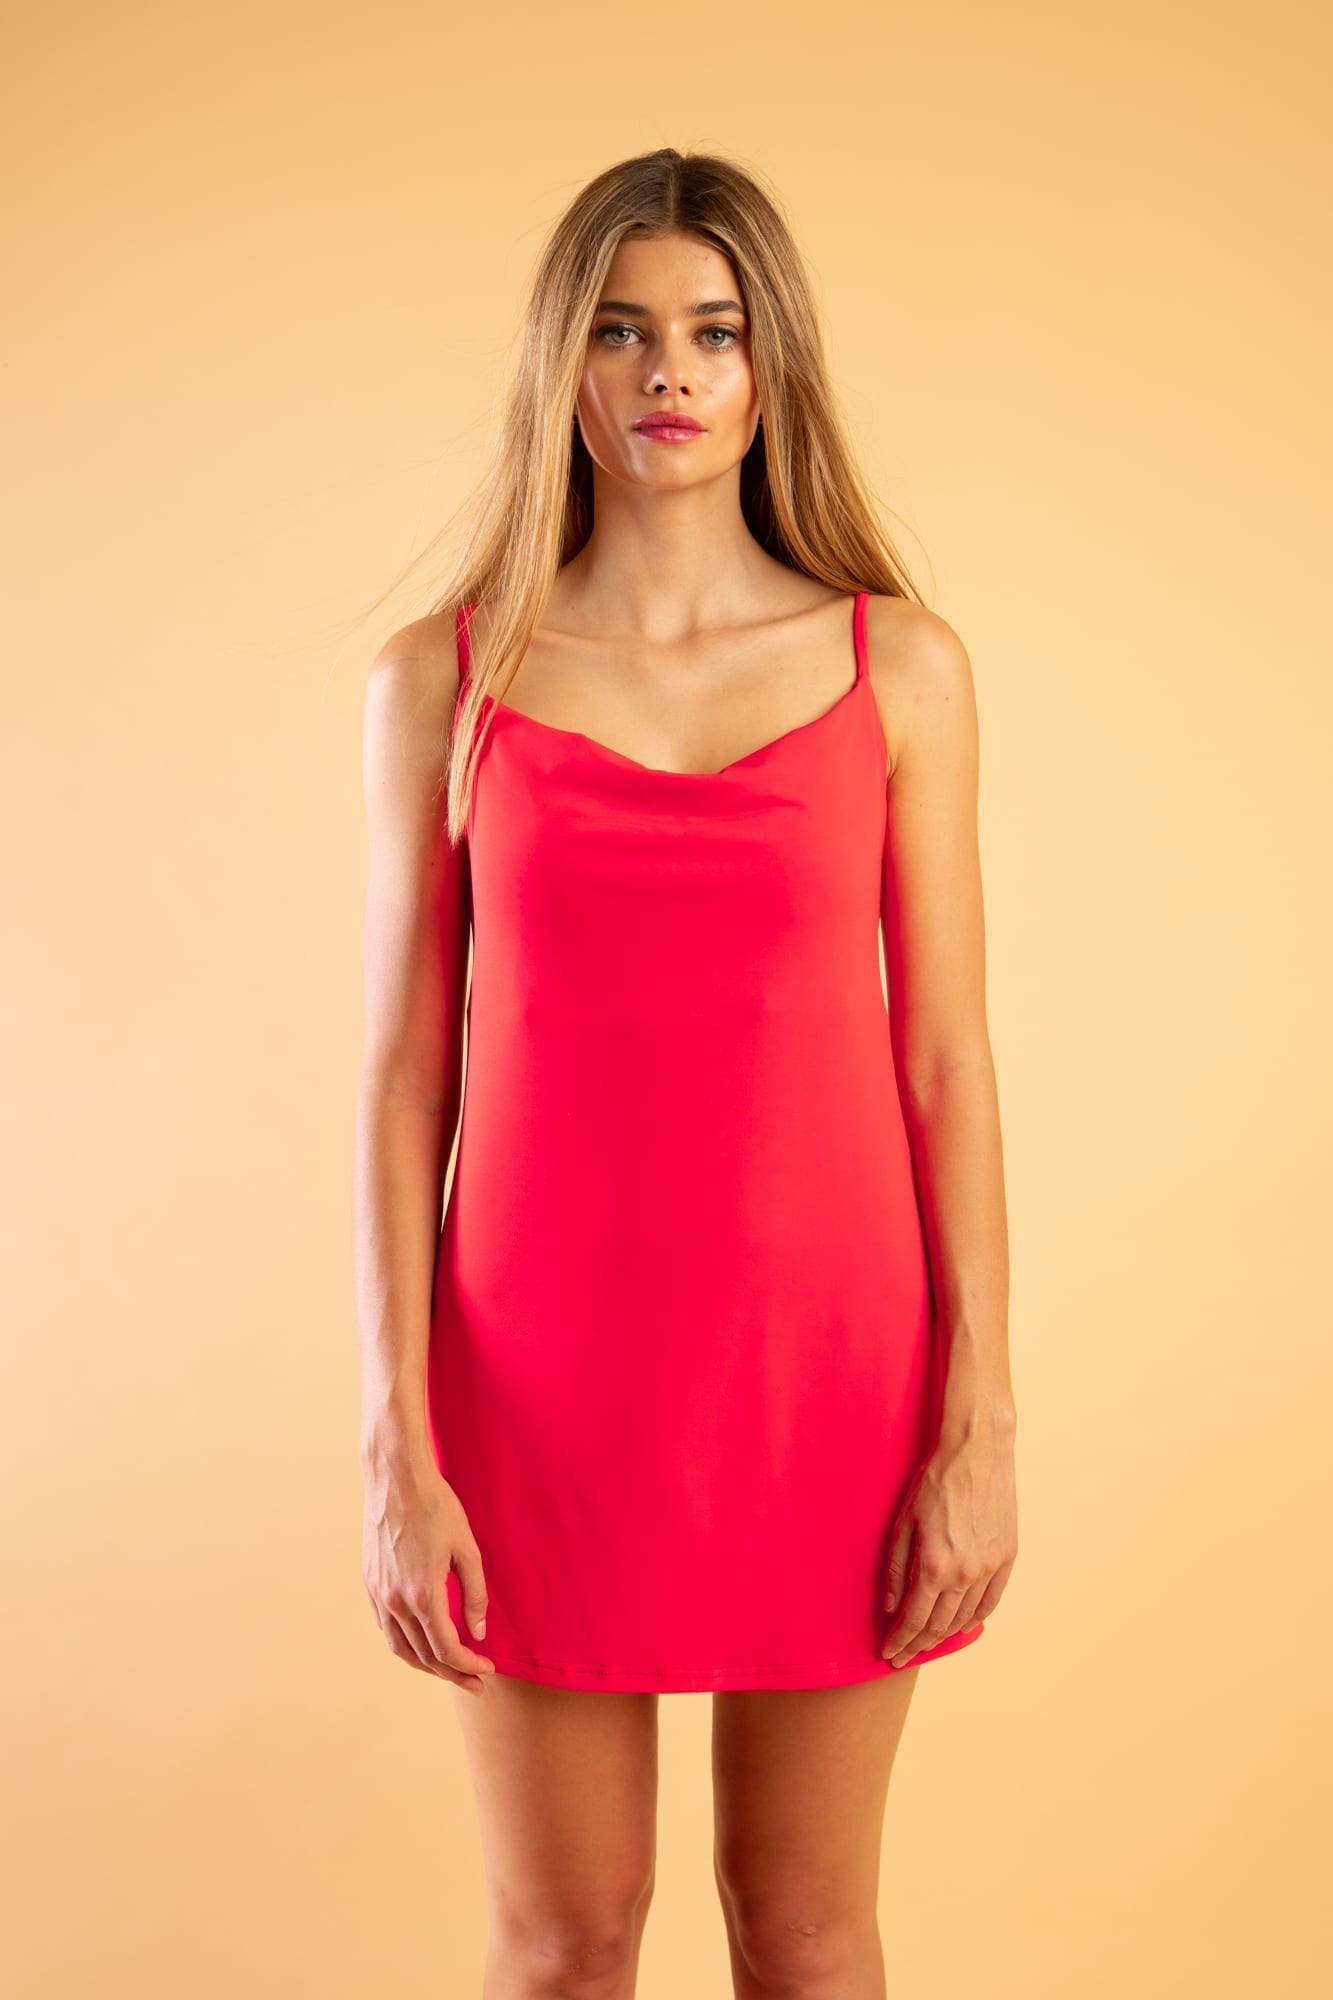 Red Slip Dress 34 -- 70s Lingerie Nightgown Lace Mini